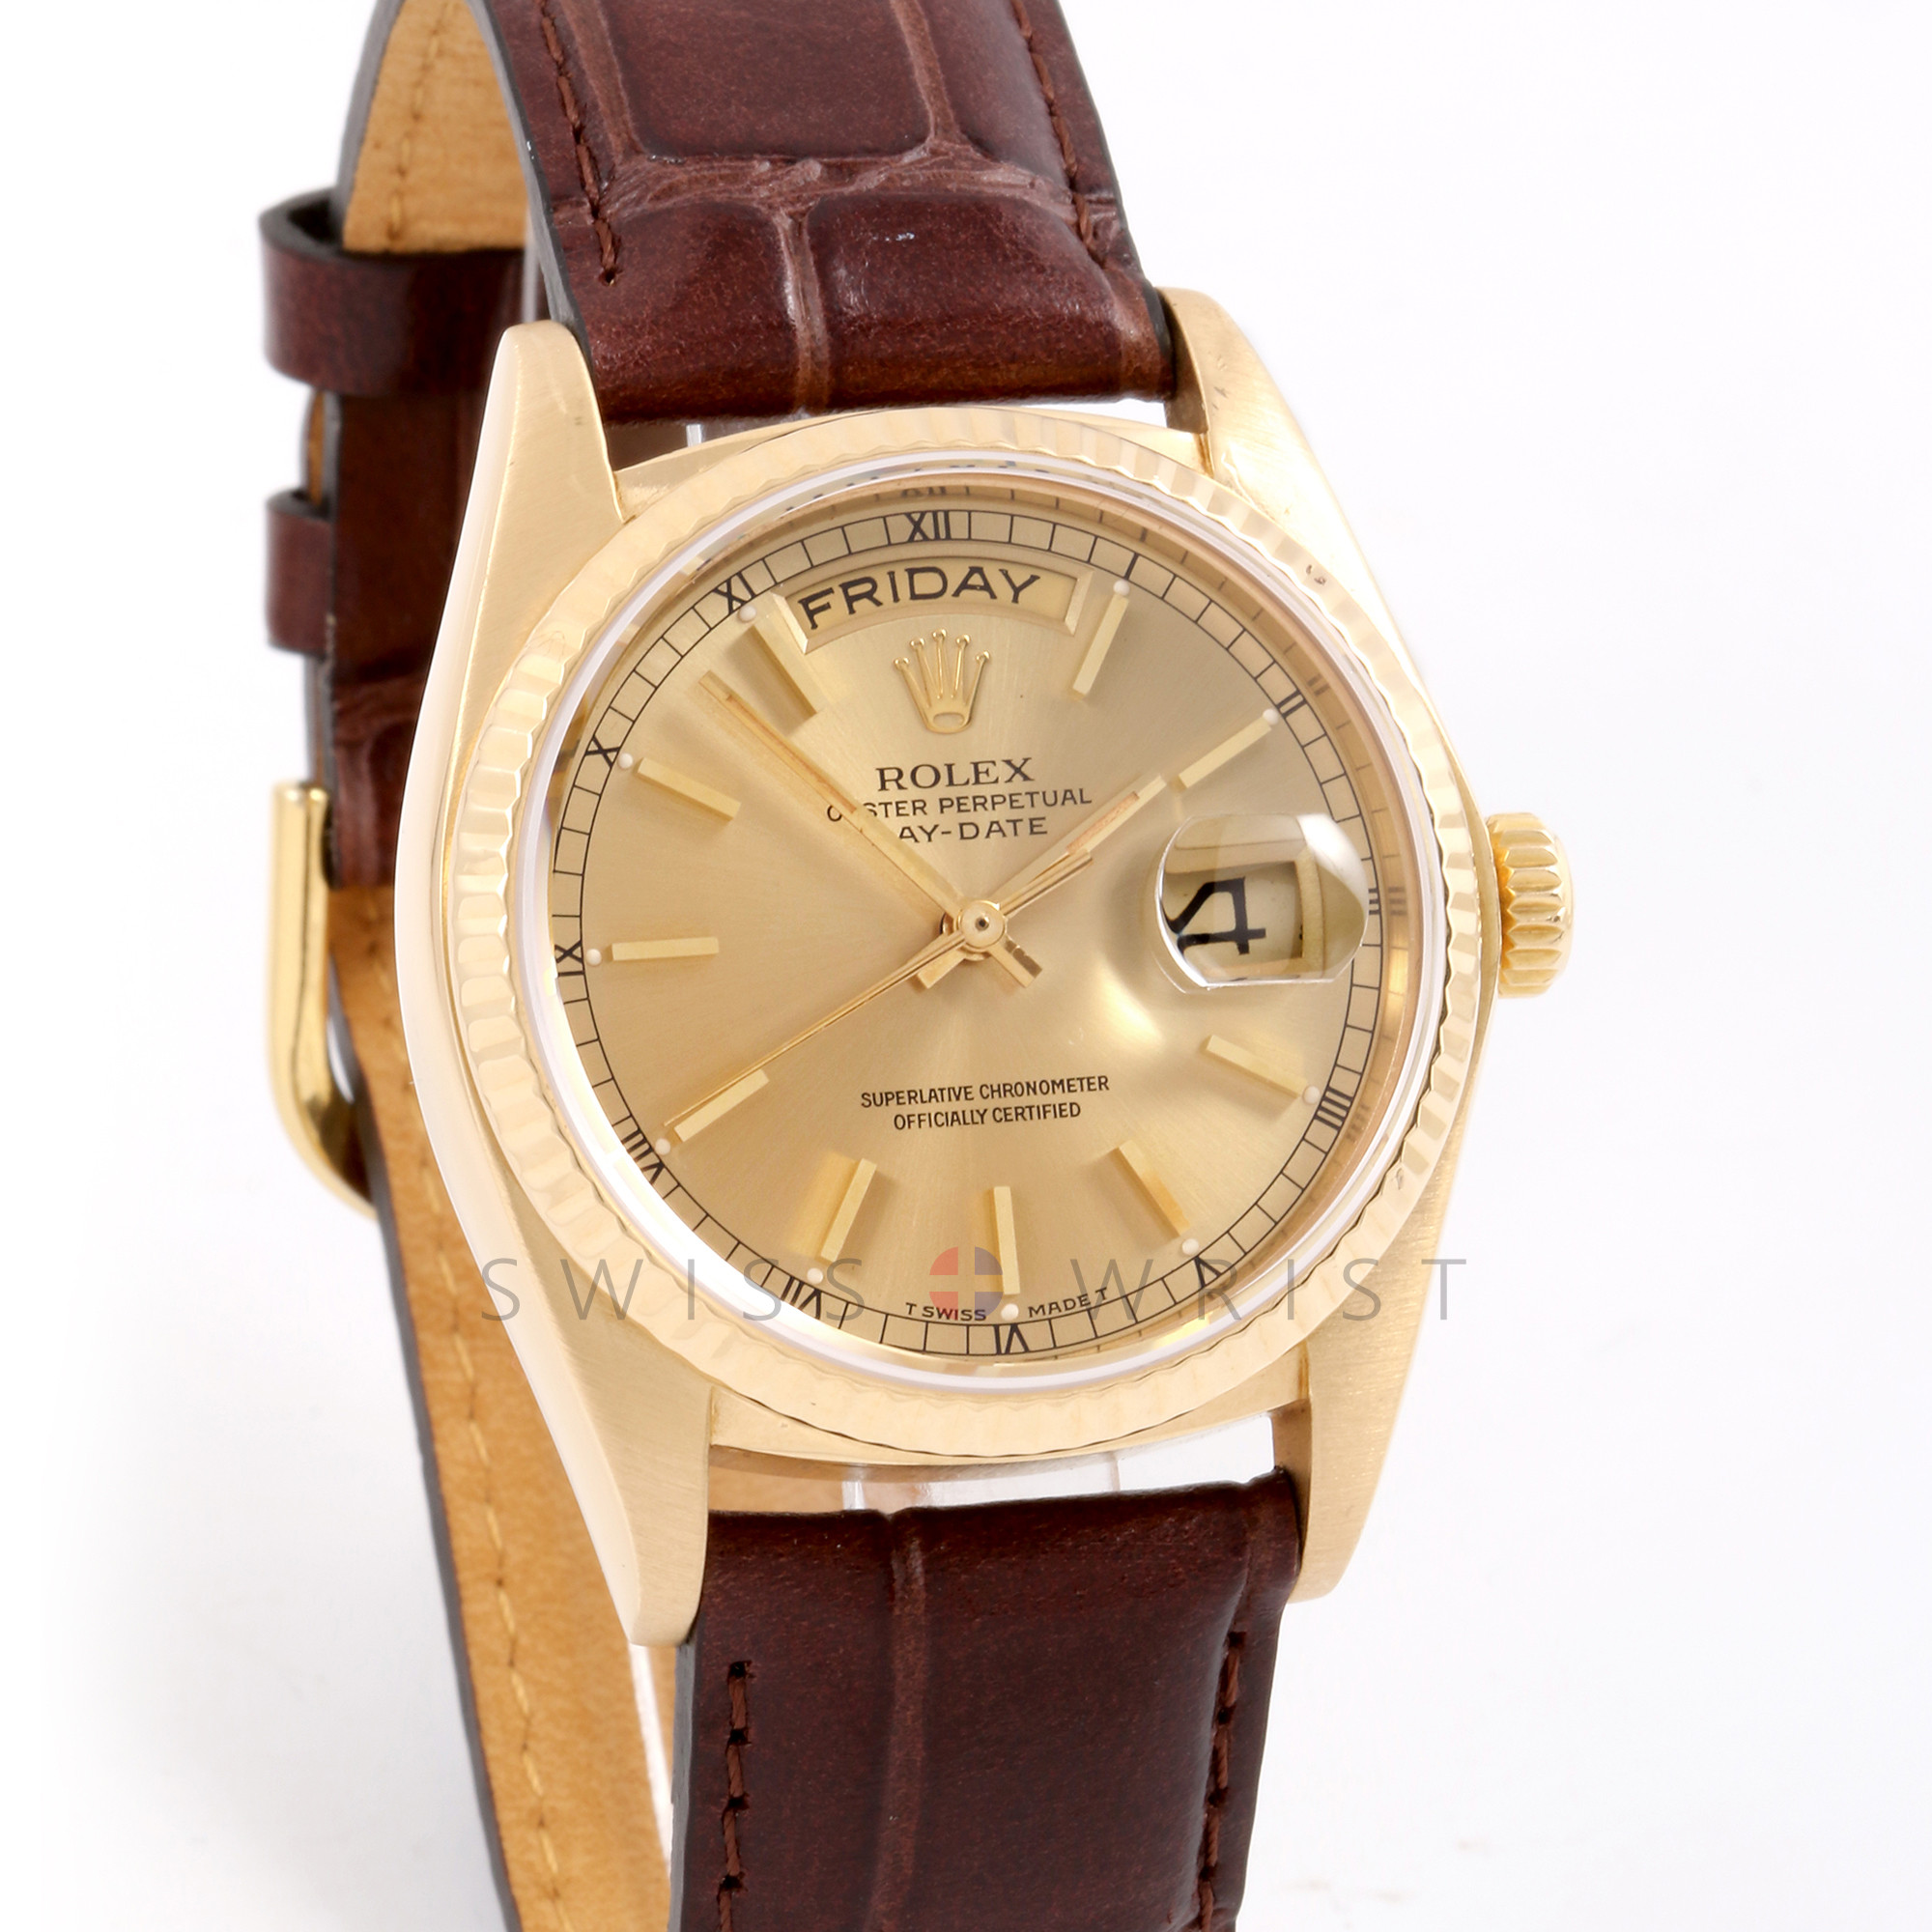 Rolex Day-Date 36 mm 18038 18K Yellow Gold, Champagne Stick Dial, Fluted Bezel on a Brown Alligator Leather Strap - Pre-Owned Men's Watch